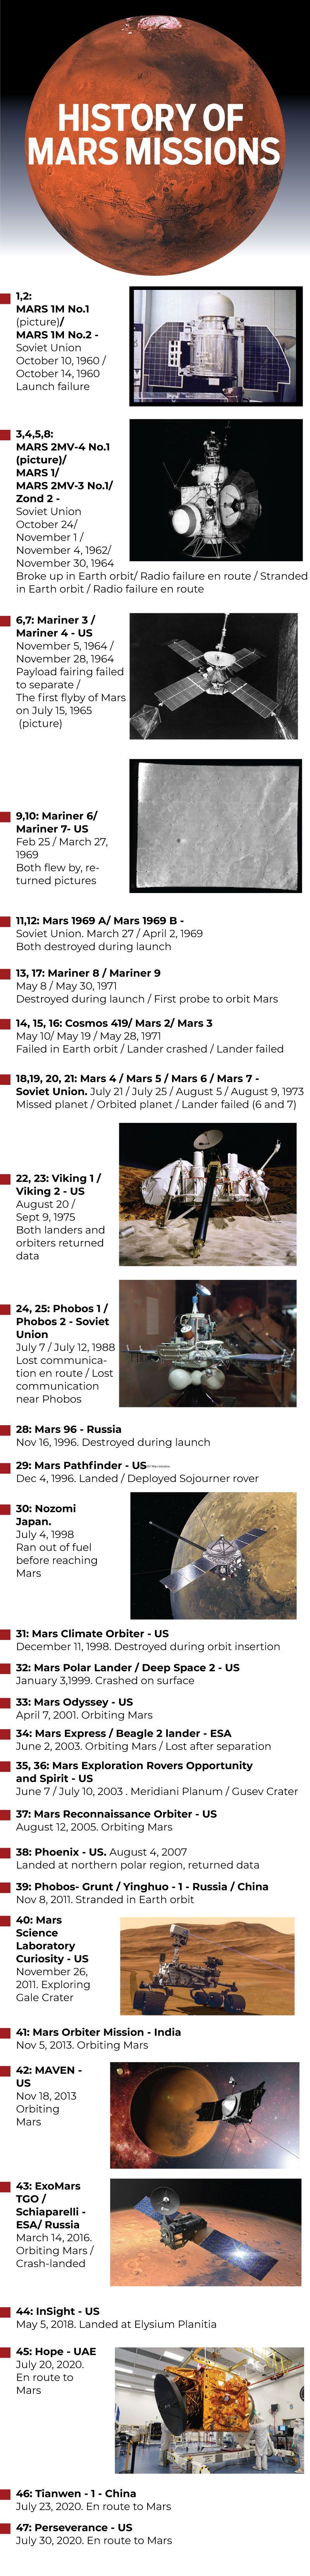 20210207 Mars Missions - Updated